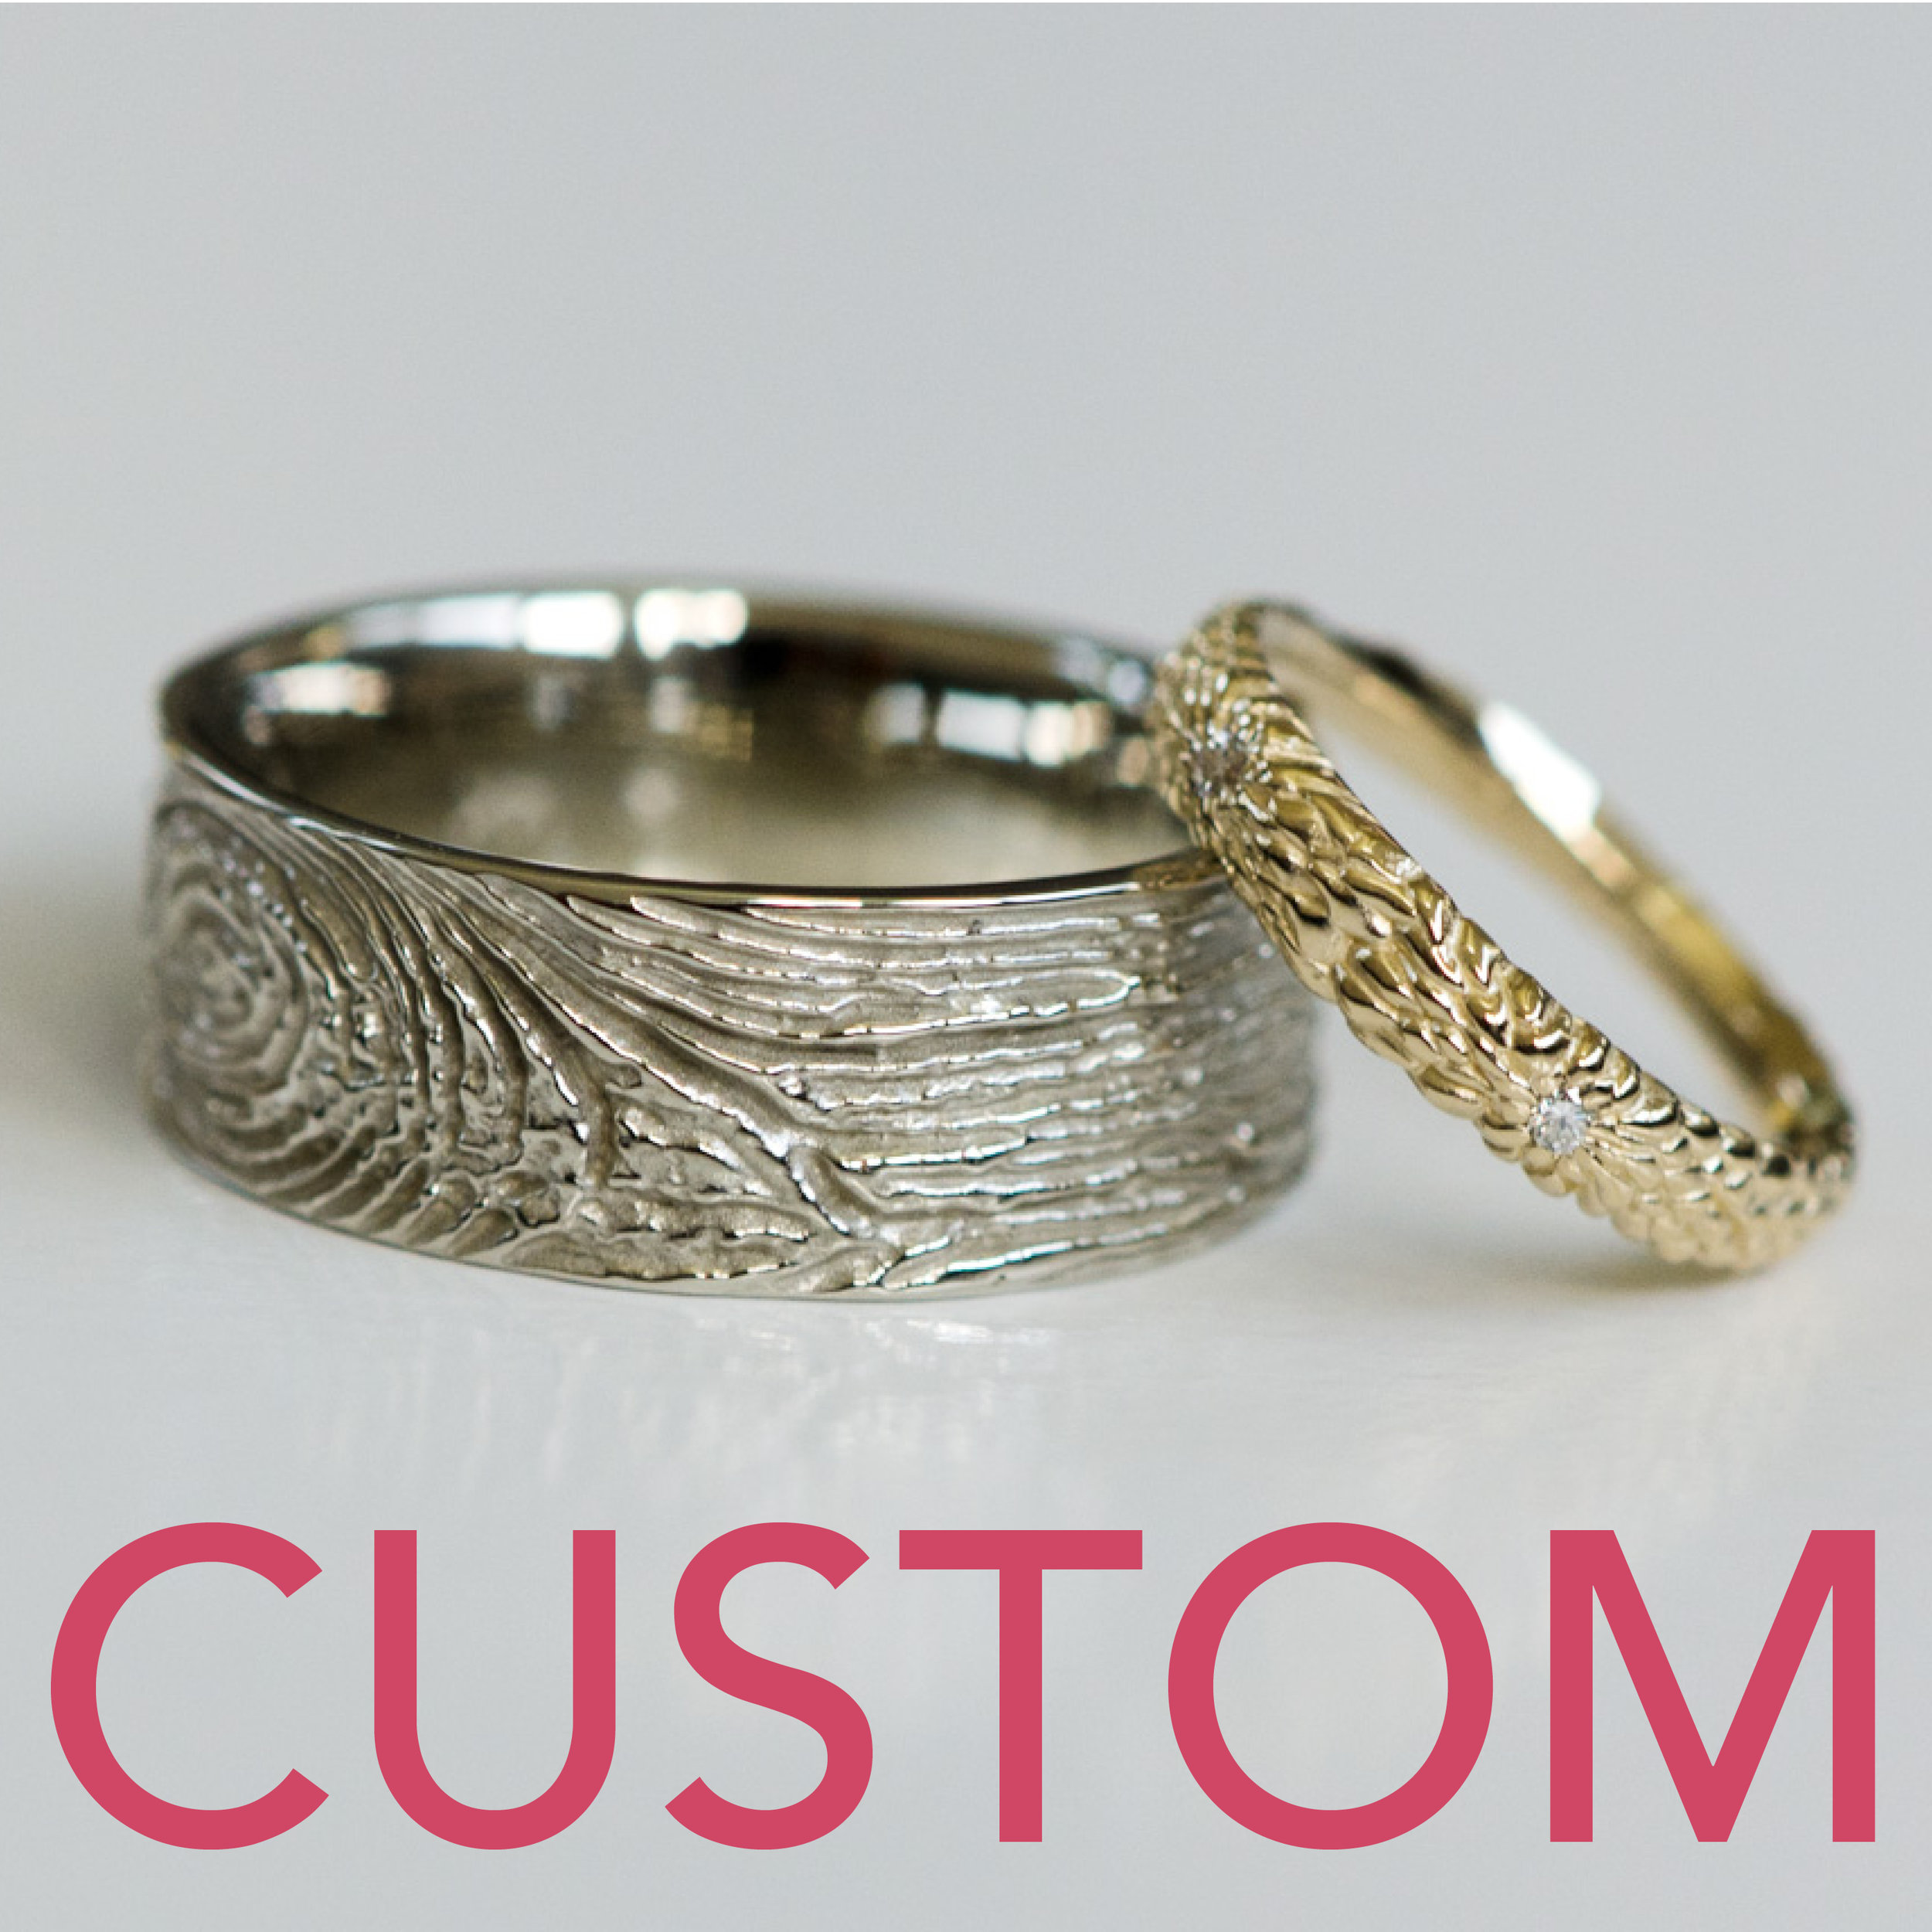 Custom Jewelry and sculpture-3.jpg